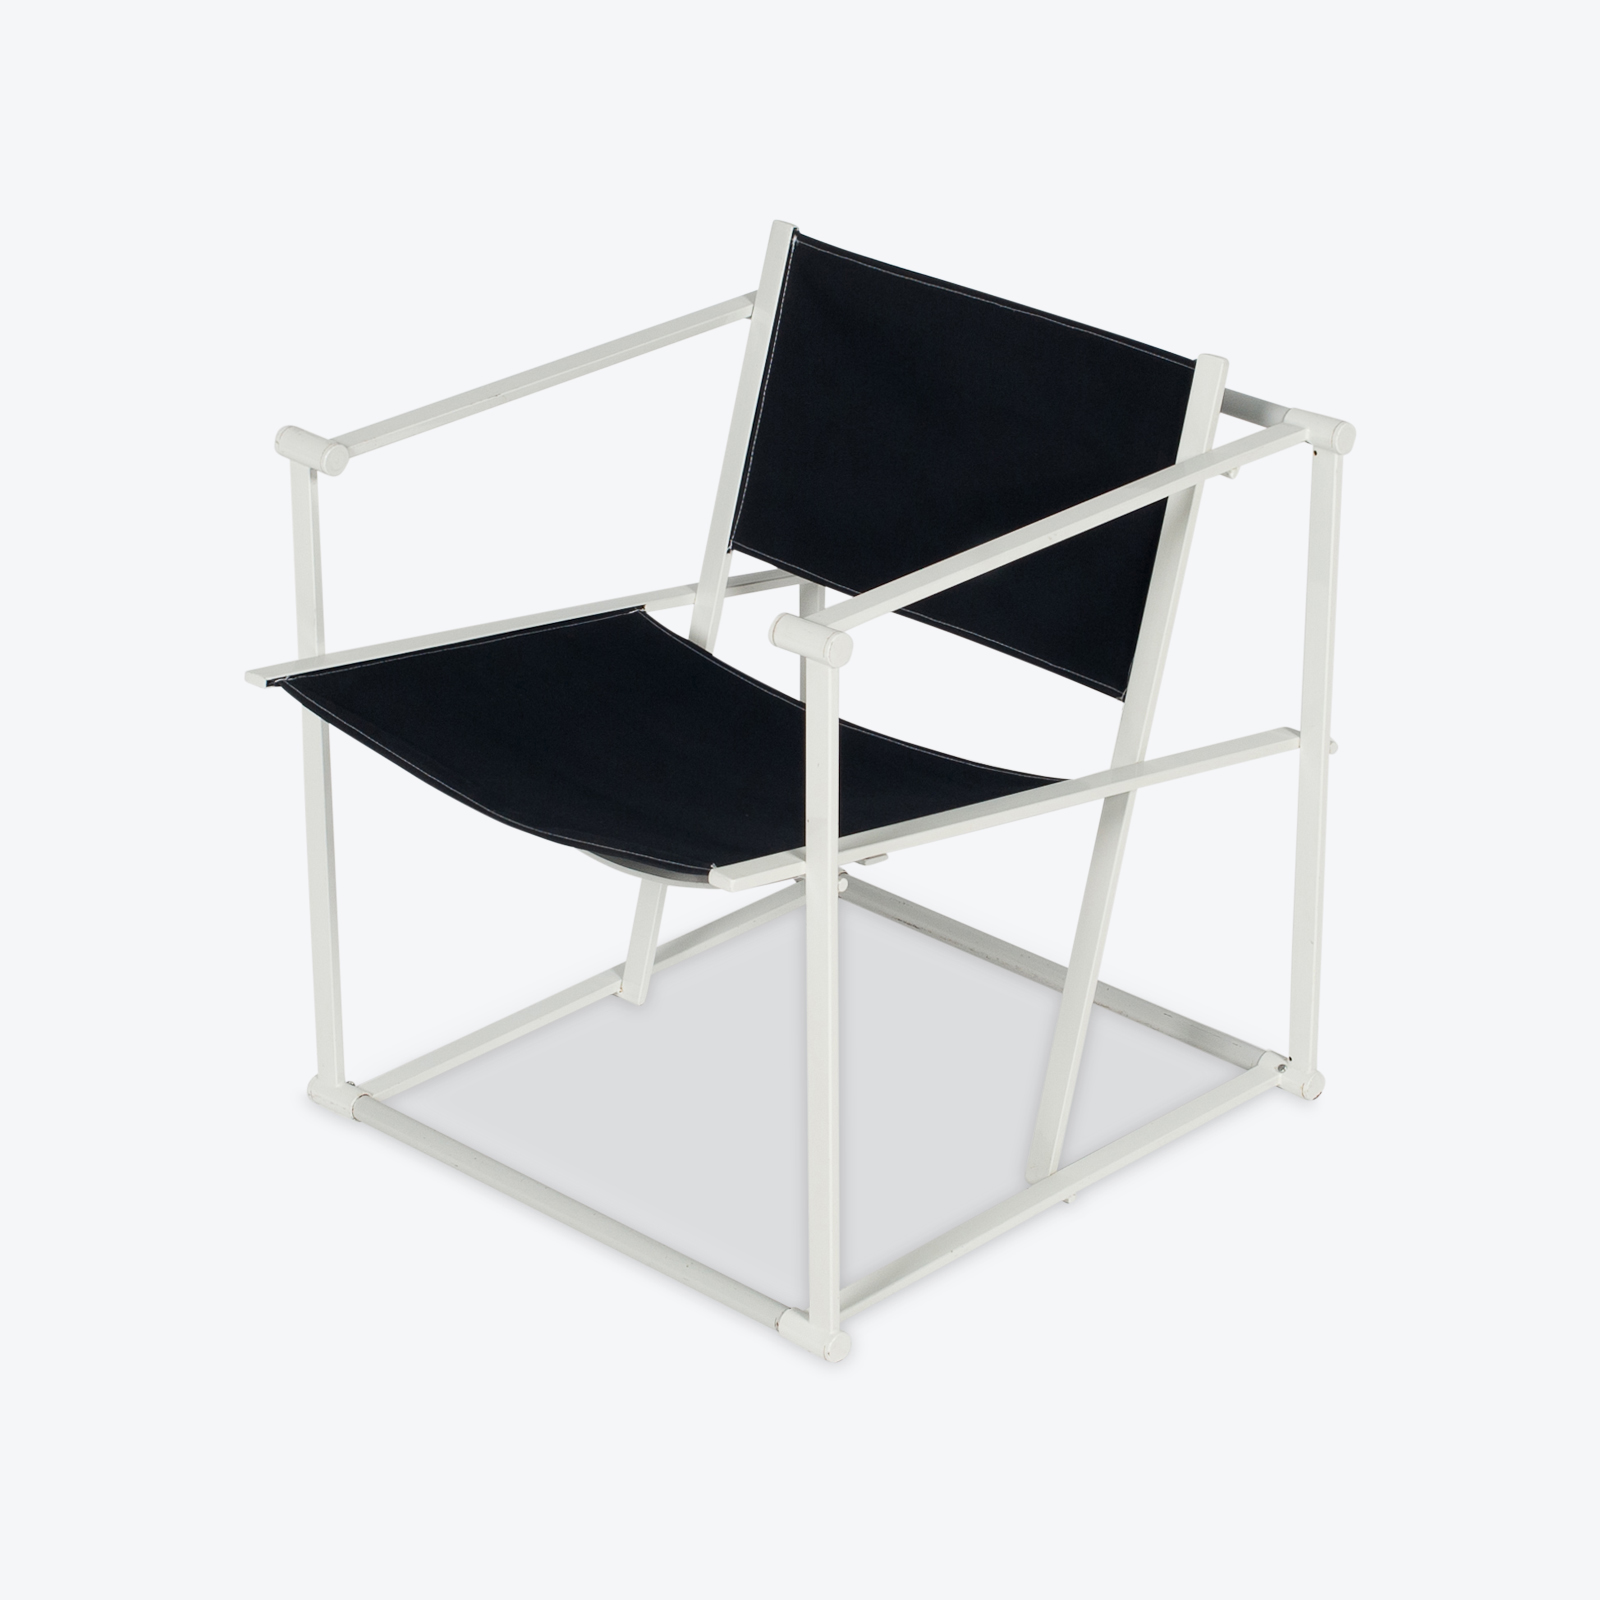 Model Fm60 Cubic Chair By Radboud Van Beekum For Pastoe In Black Canvas And Grey Frame, 1980s, The Netherlands Hero